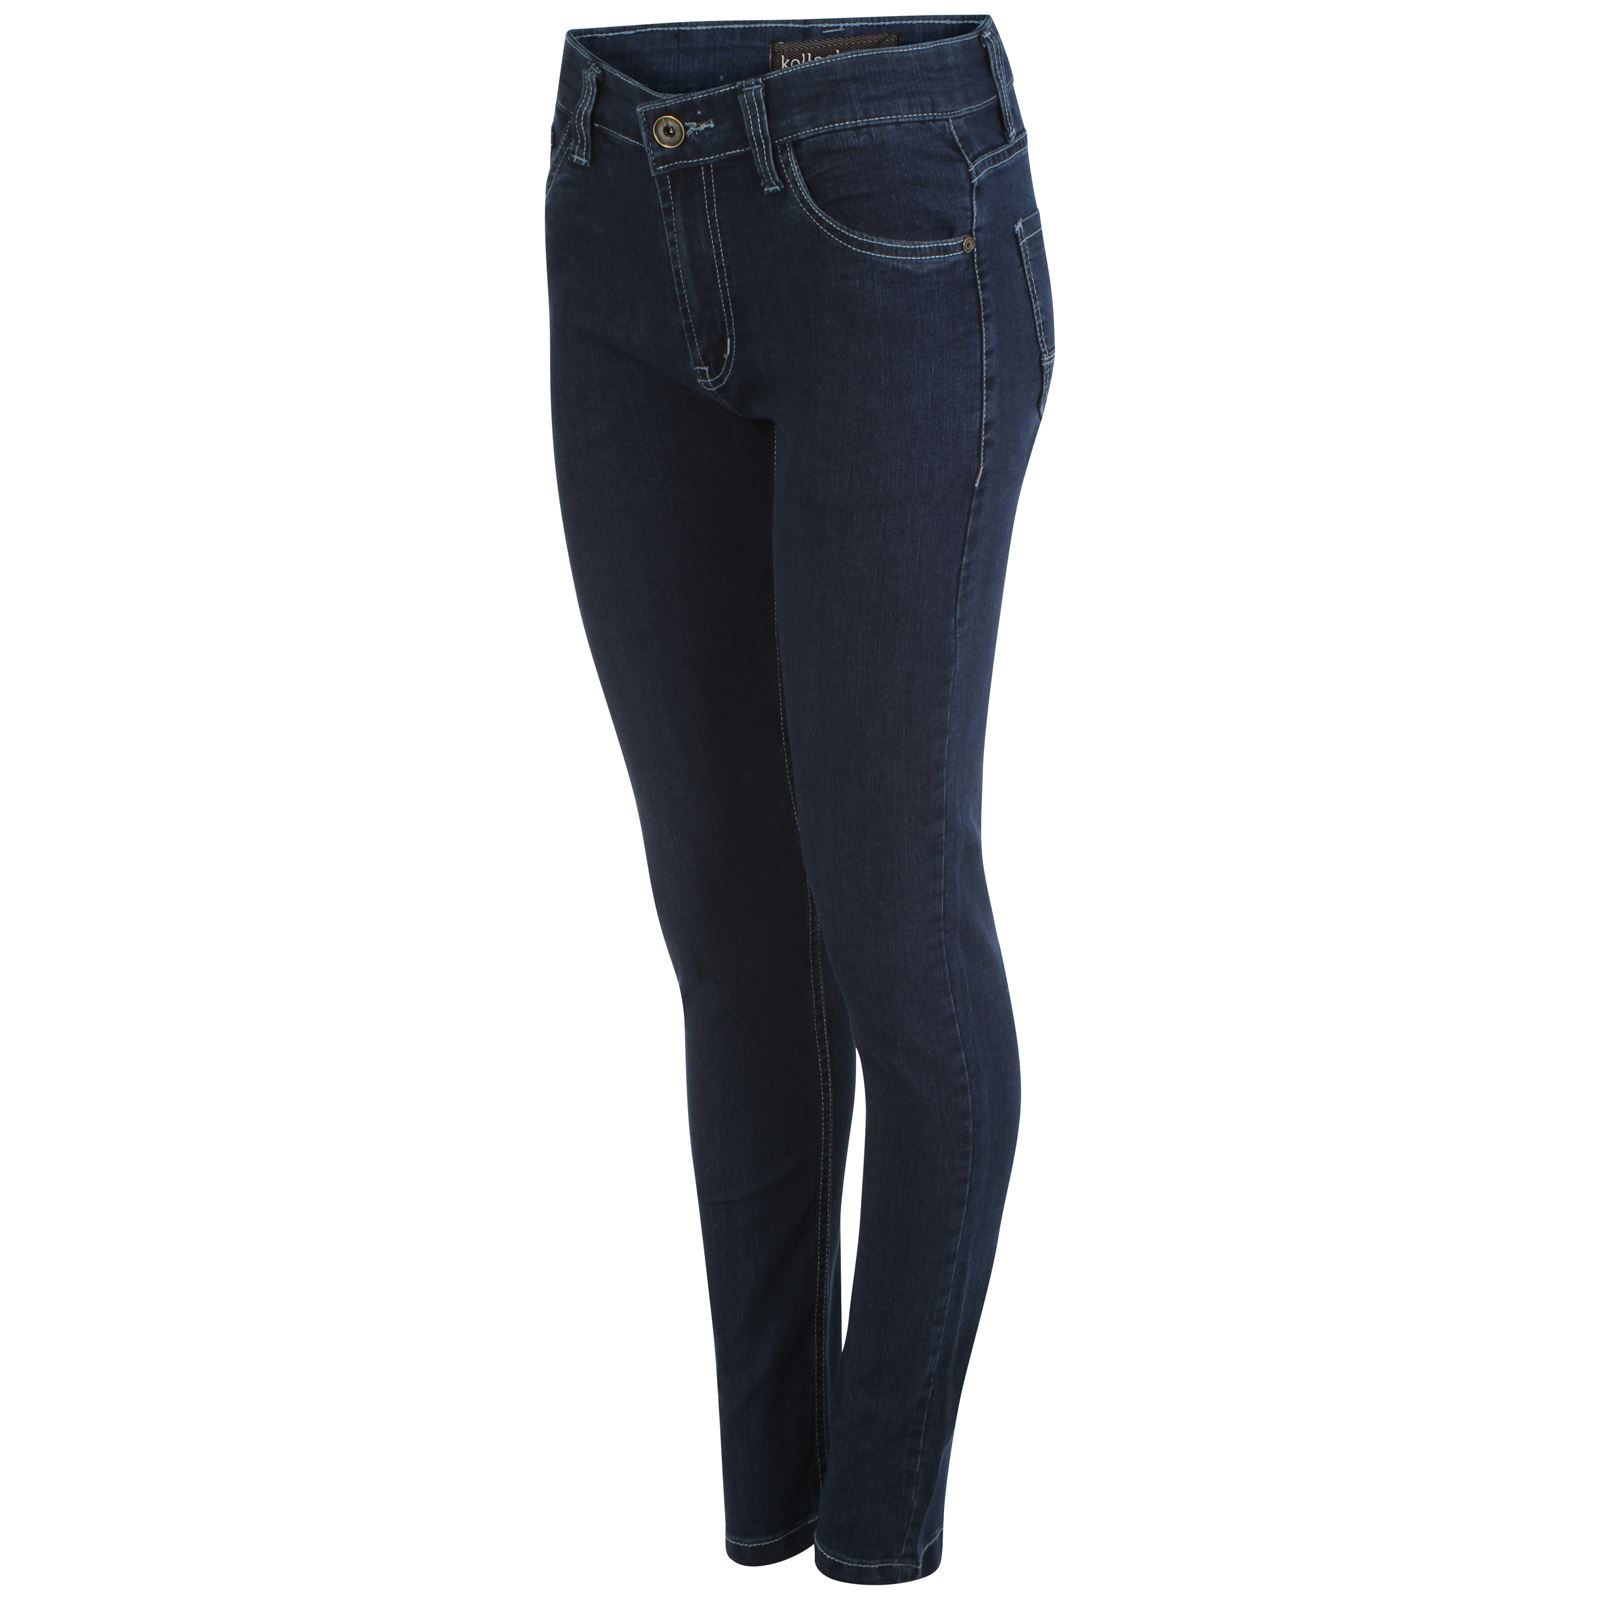 Women's Skinny and Slim Leg Jeans | Silver JeansFree Shipping, All Orders · Extended Sizes Available · Online Fit Guide.